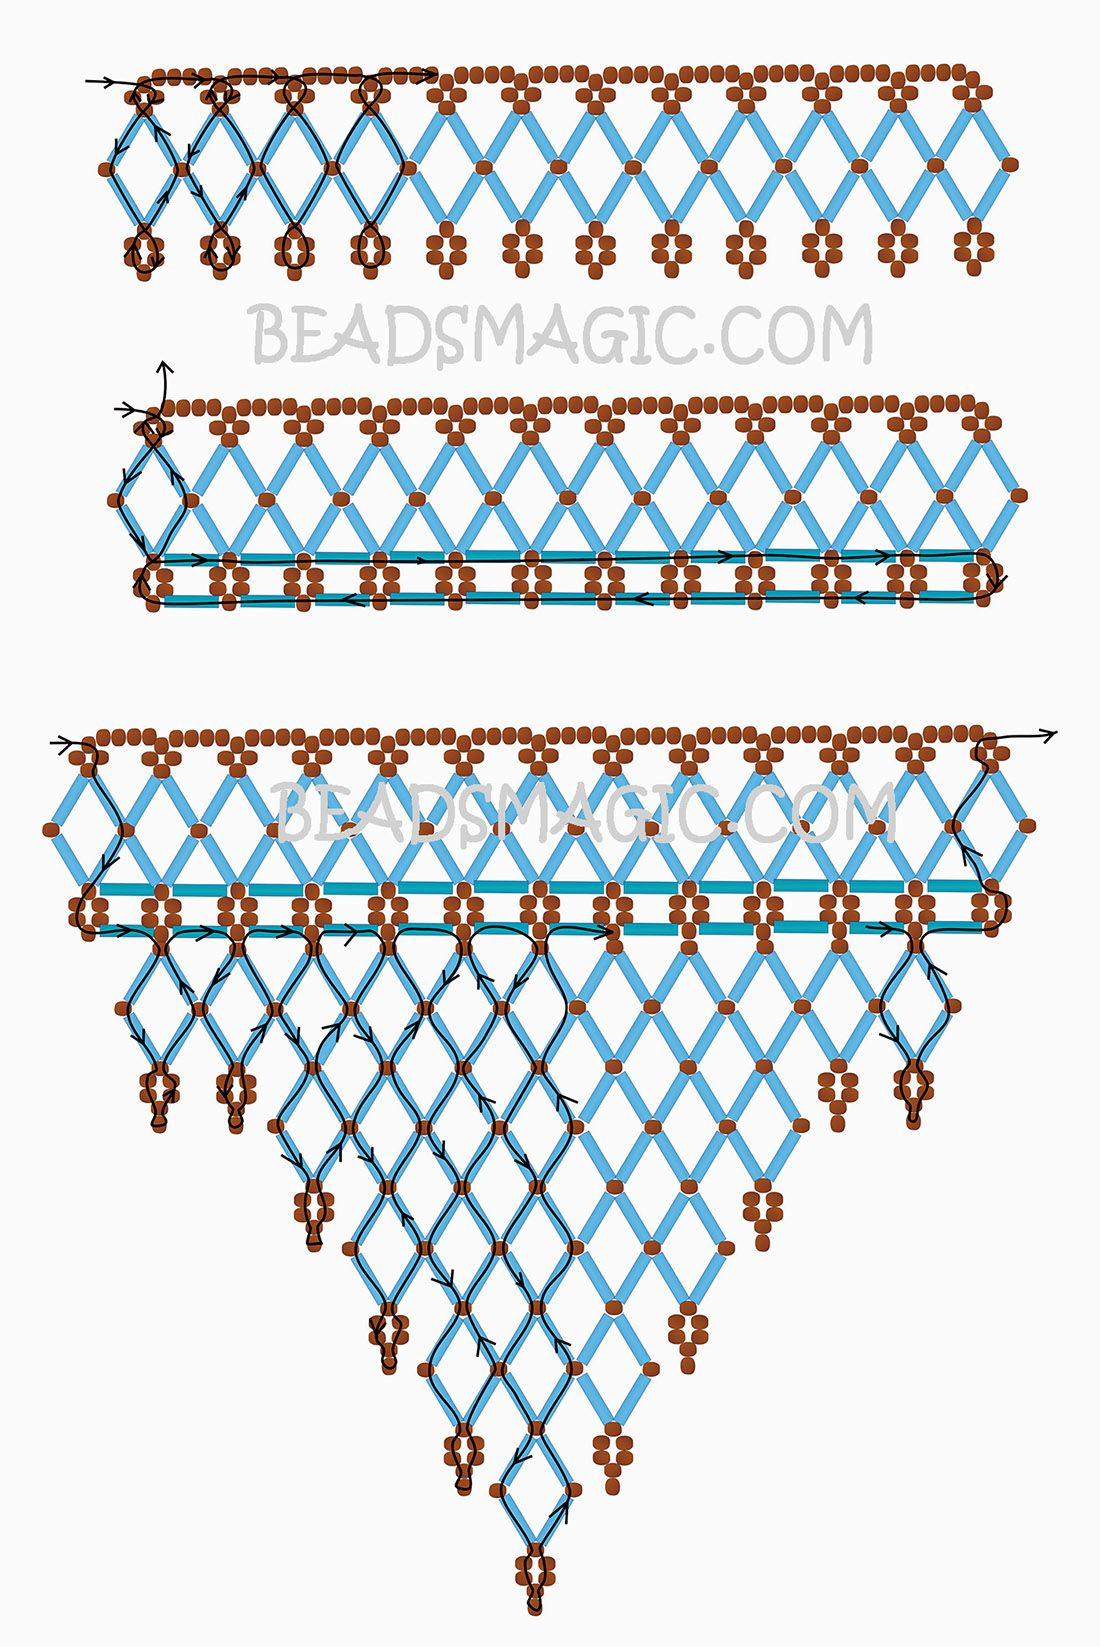 free-beading-necklace-tutorial-pattern-instructions-21.jpg 1.100×1.647 piksel